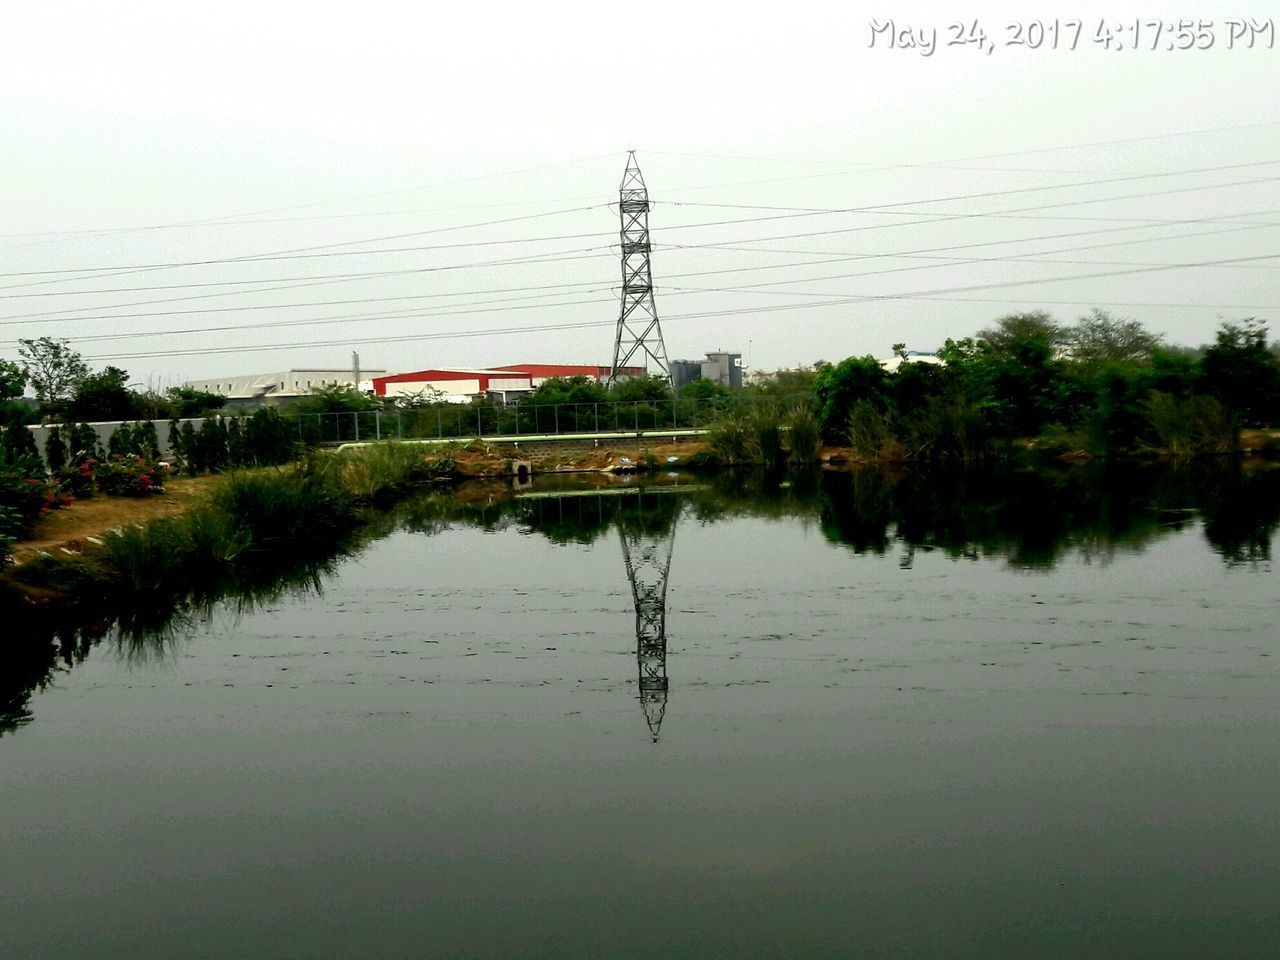 reflection, cable, water, power line, no people, electricity pylon, day, tree, outdoors, nature, sky